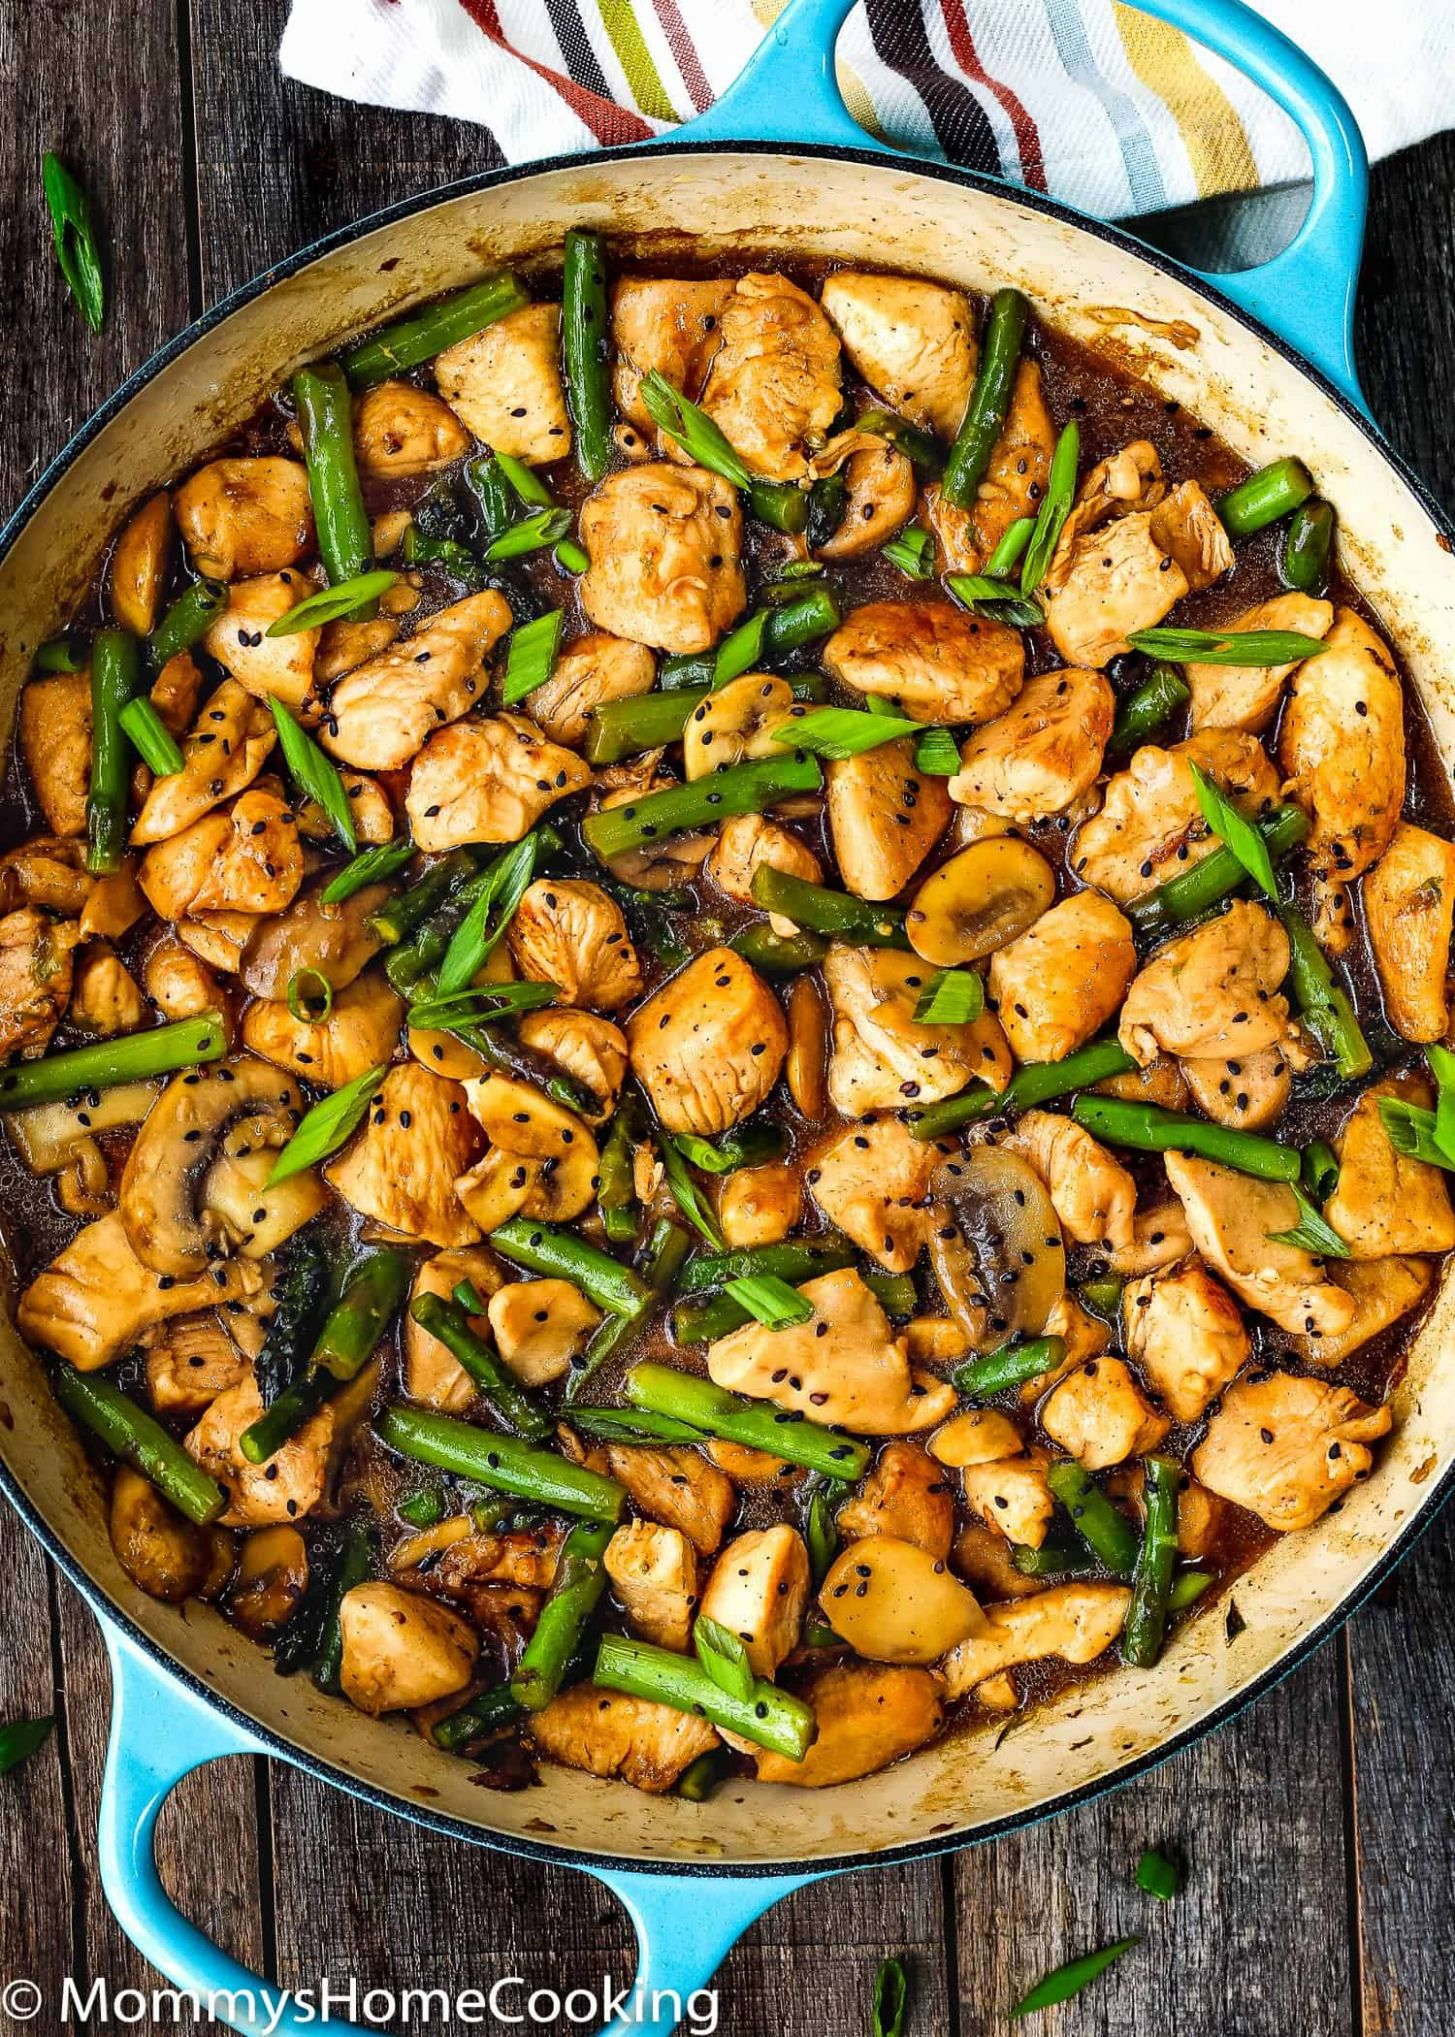 Easy Healthy Chicken and Asparagus Skillet - Recipes Dinner Healthy